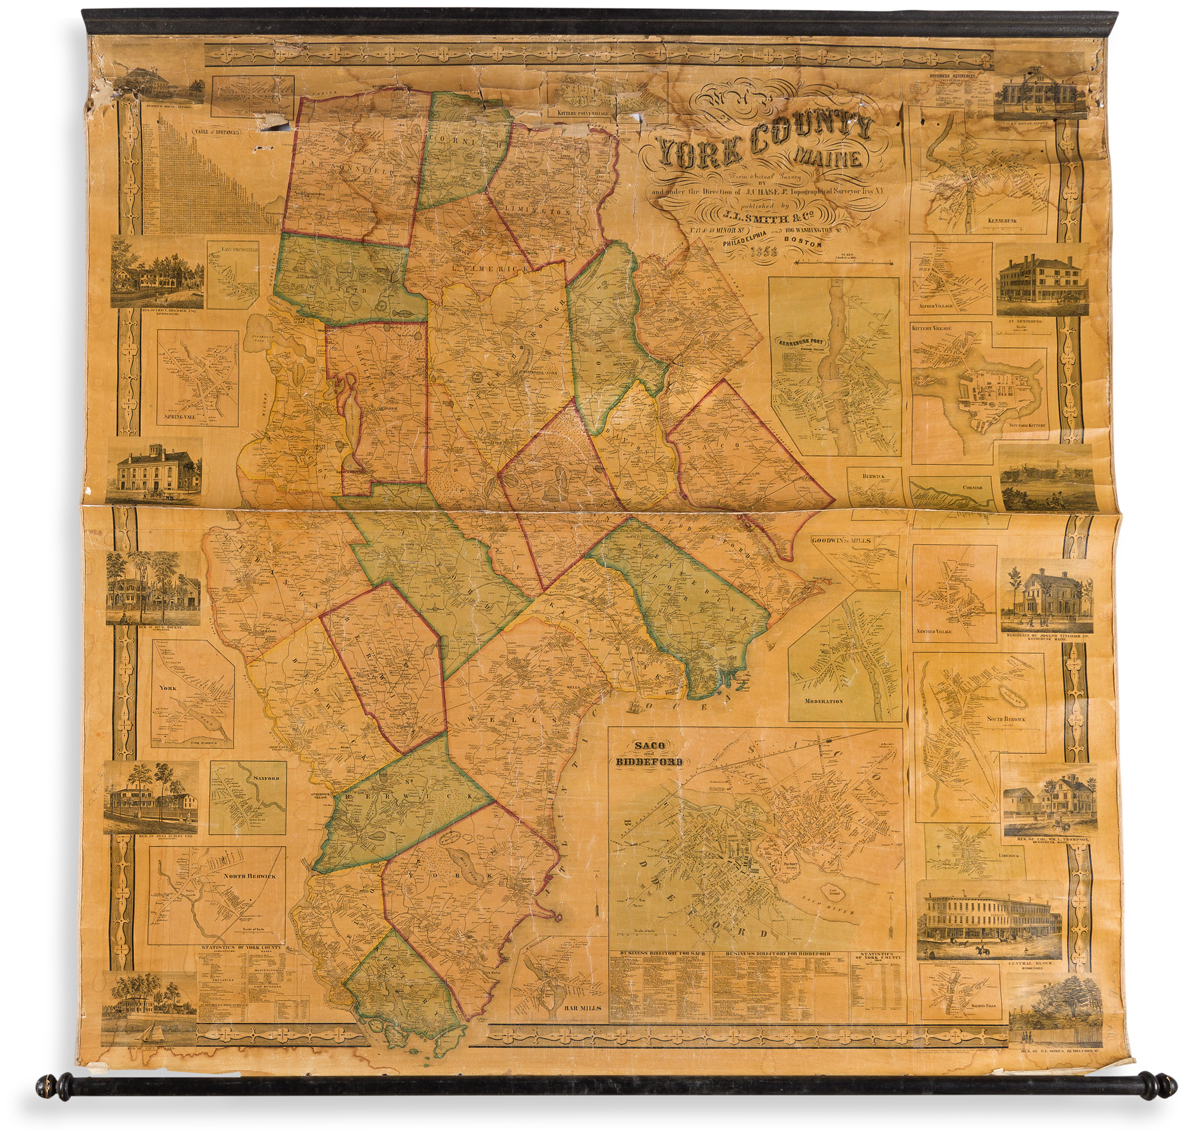 (MAINE.) J. Chase, Jr. Map of York County Maine.